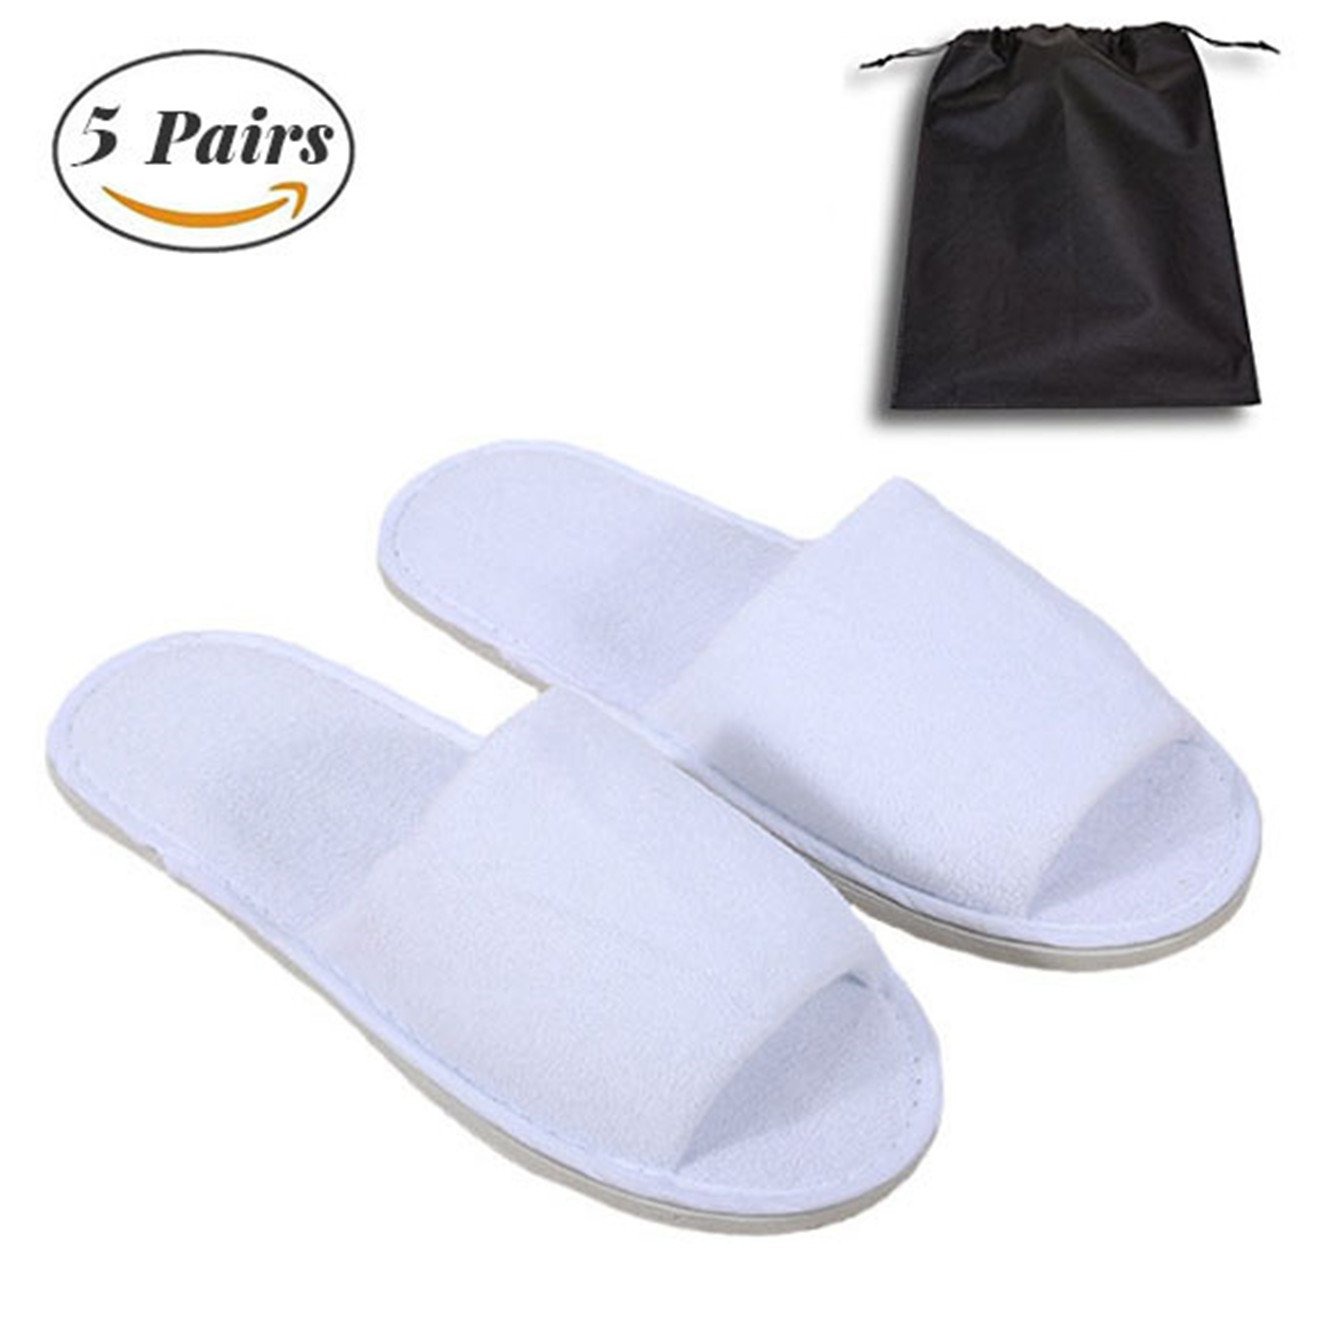 Spa Slipper- 5 Pairs of Velvet Open Toe Slippers with Travel Bags- One Size Fit Most Men and Women for Spa, Party Guest, Hotel and Travel, Washable and Non-Disposable